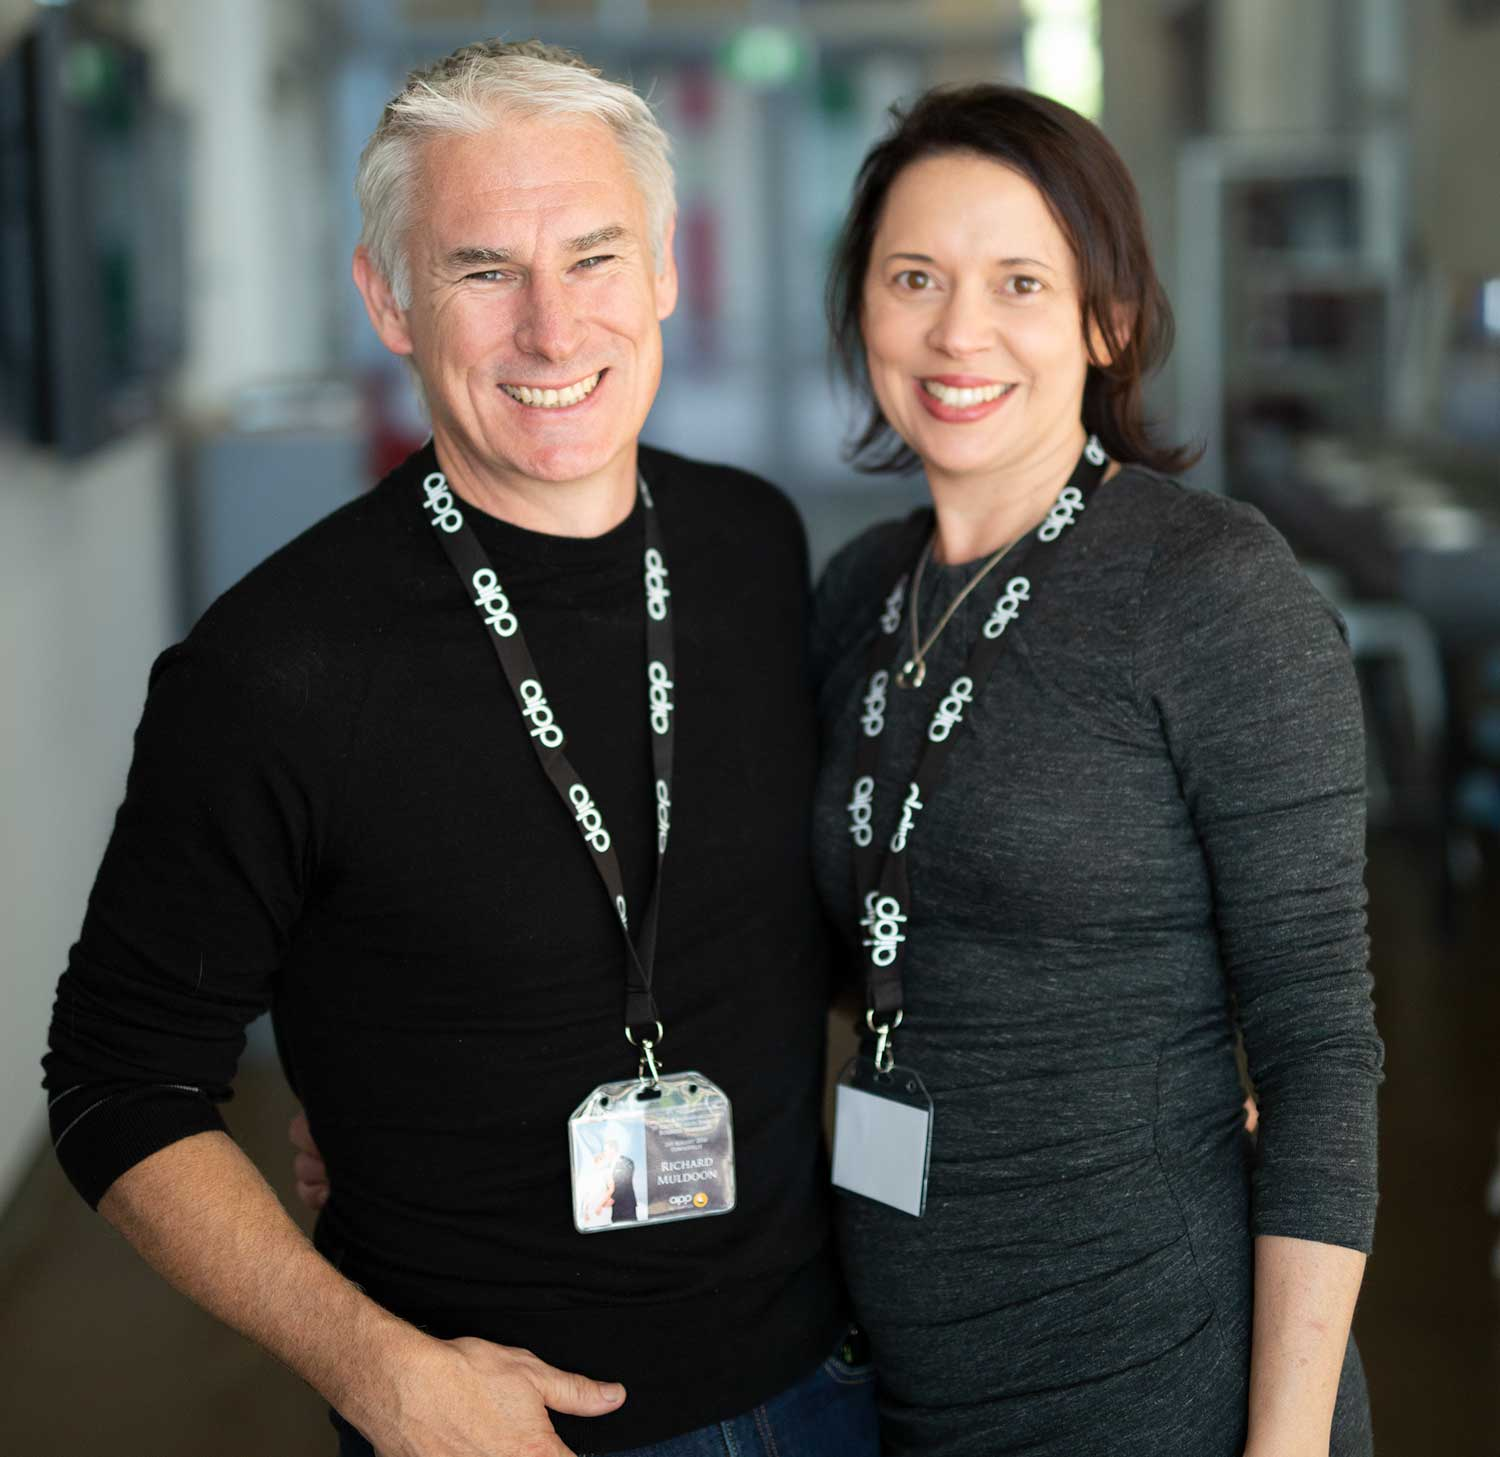 The Photography Zone, Richard Muldoon and Catherin Muldoon